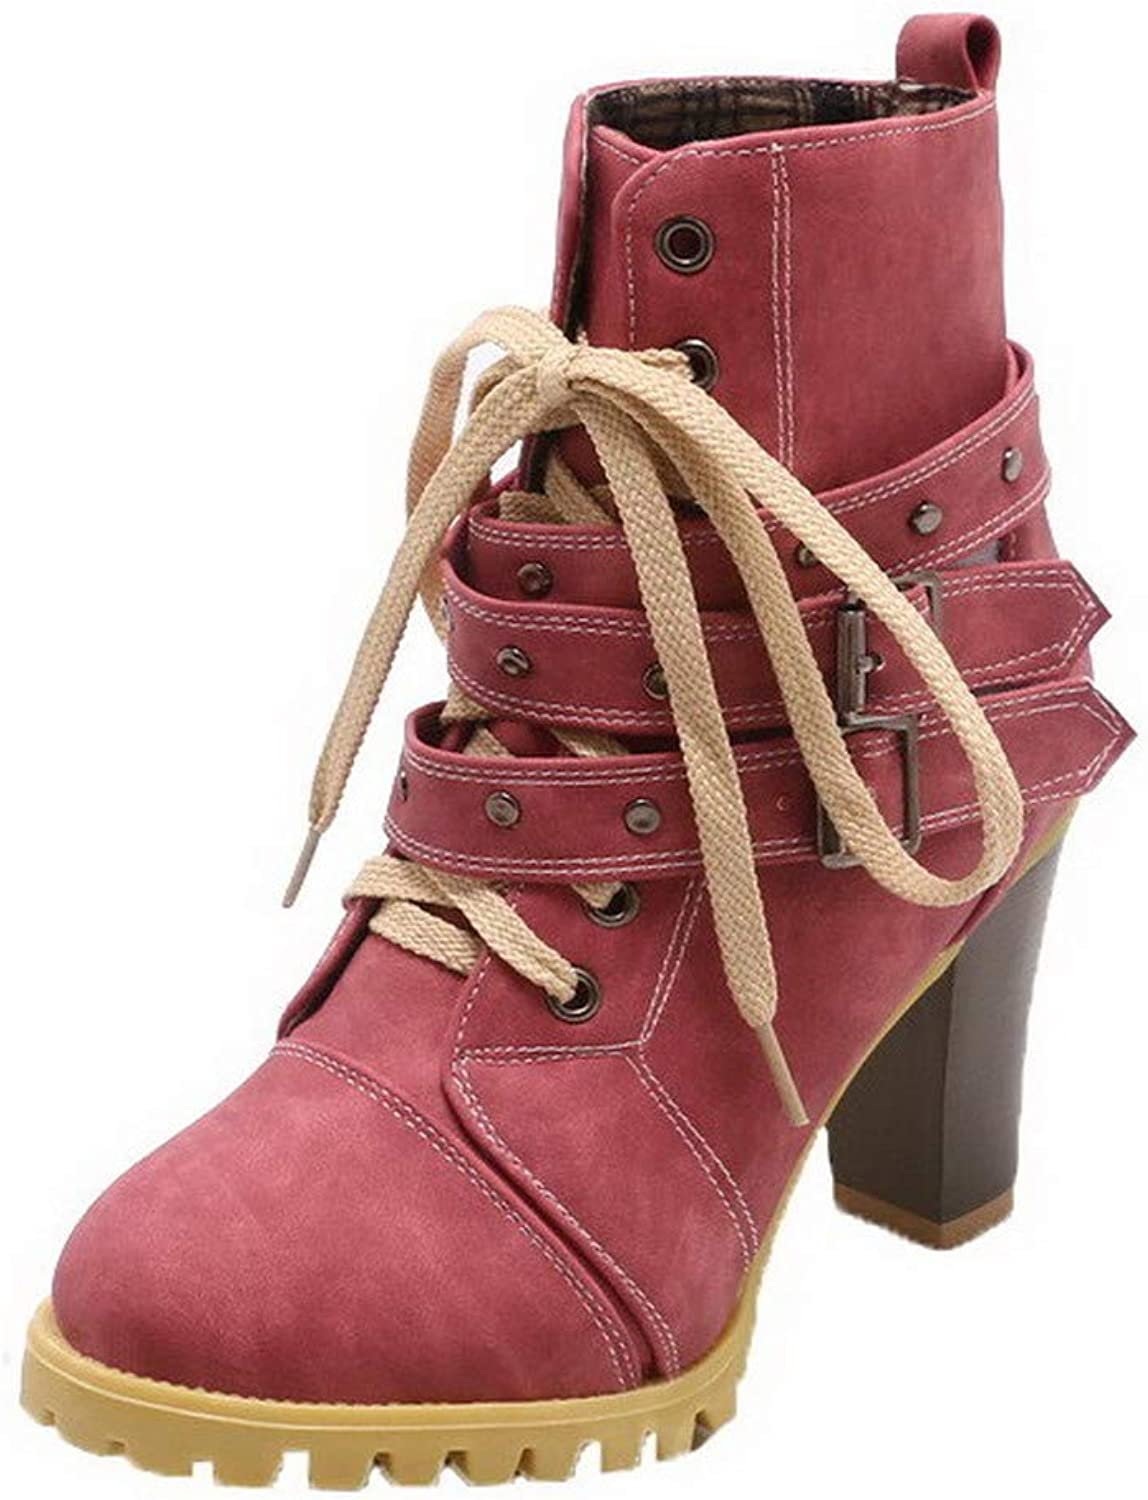 AmoonyFashion Women's Low-Top Hook-and-Loop Frosted High-Heels Round-Toe Boots, BUSXT117764